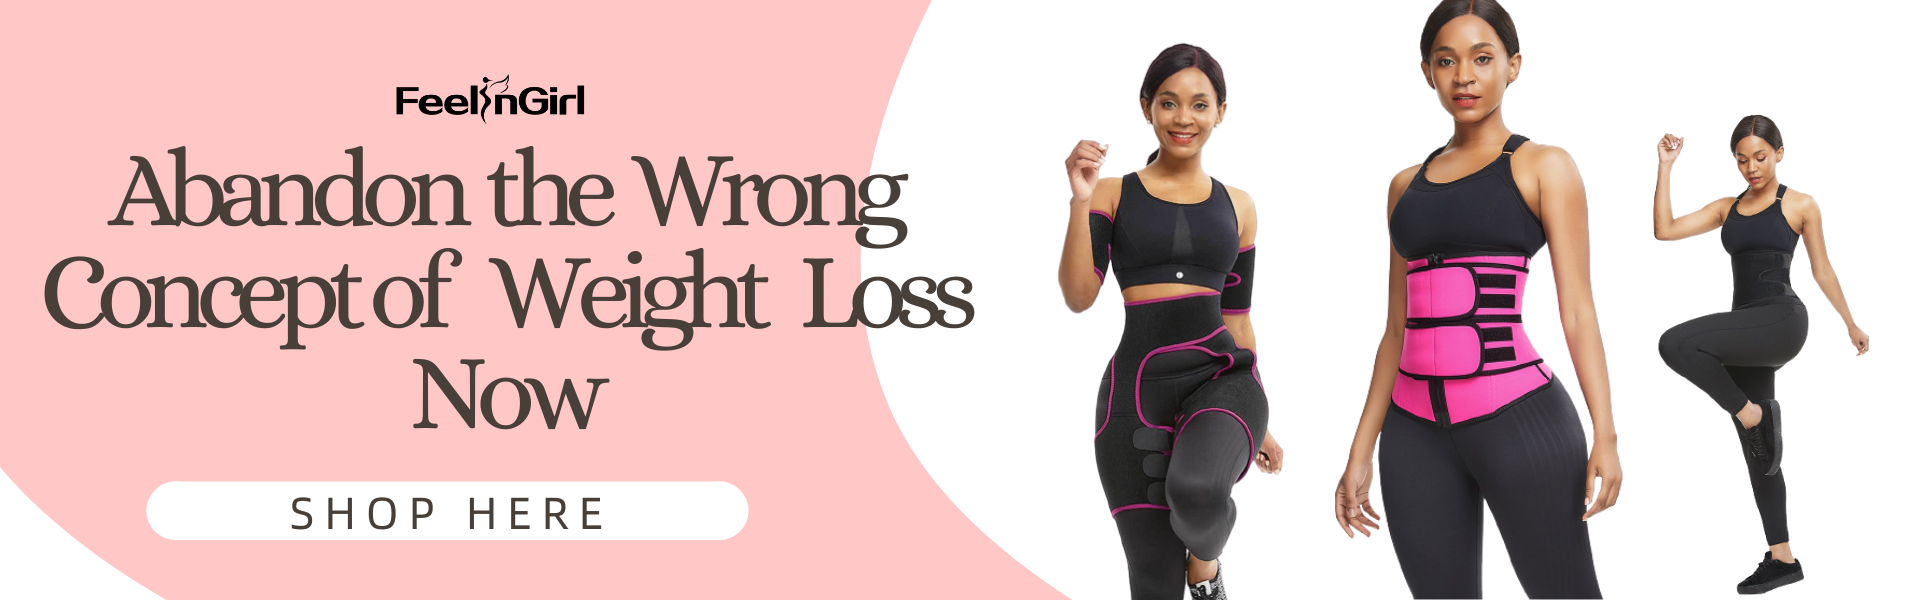 Abandon the Wrong Concept of Weight Loss Now